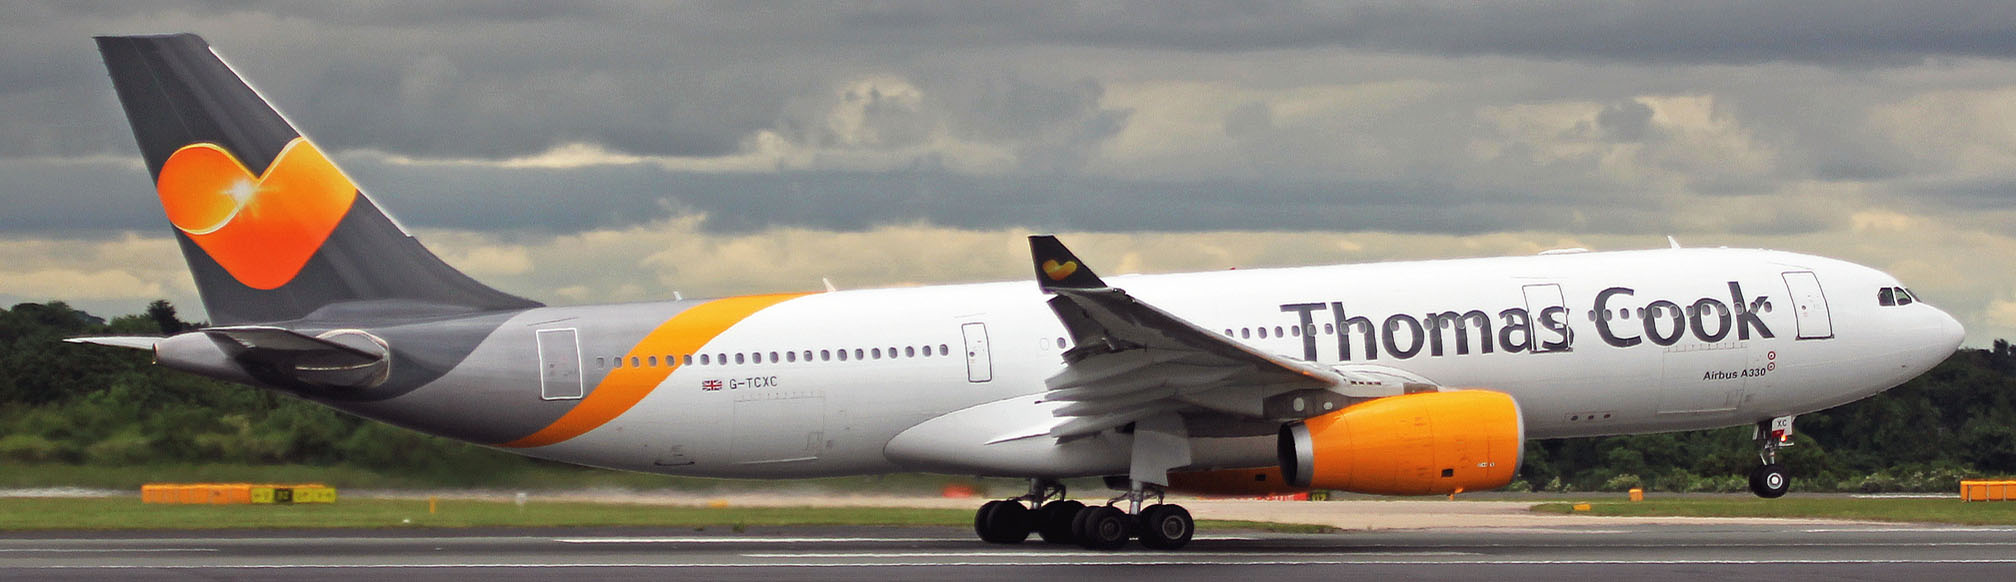 Thomas Cook Airbus A330 on take off rotation